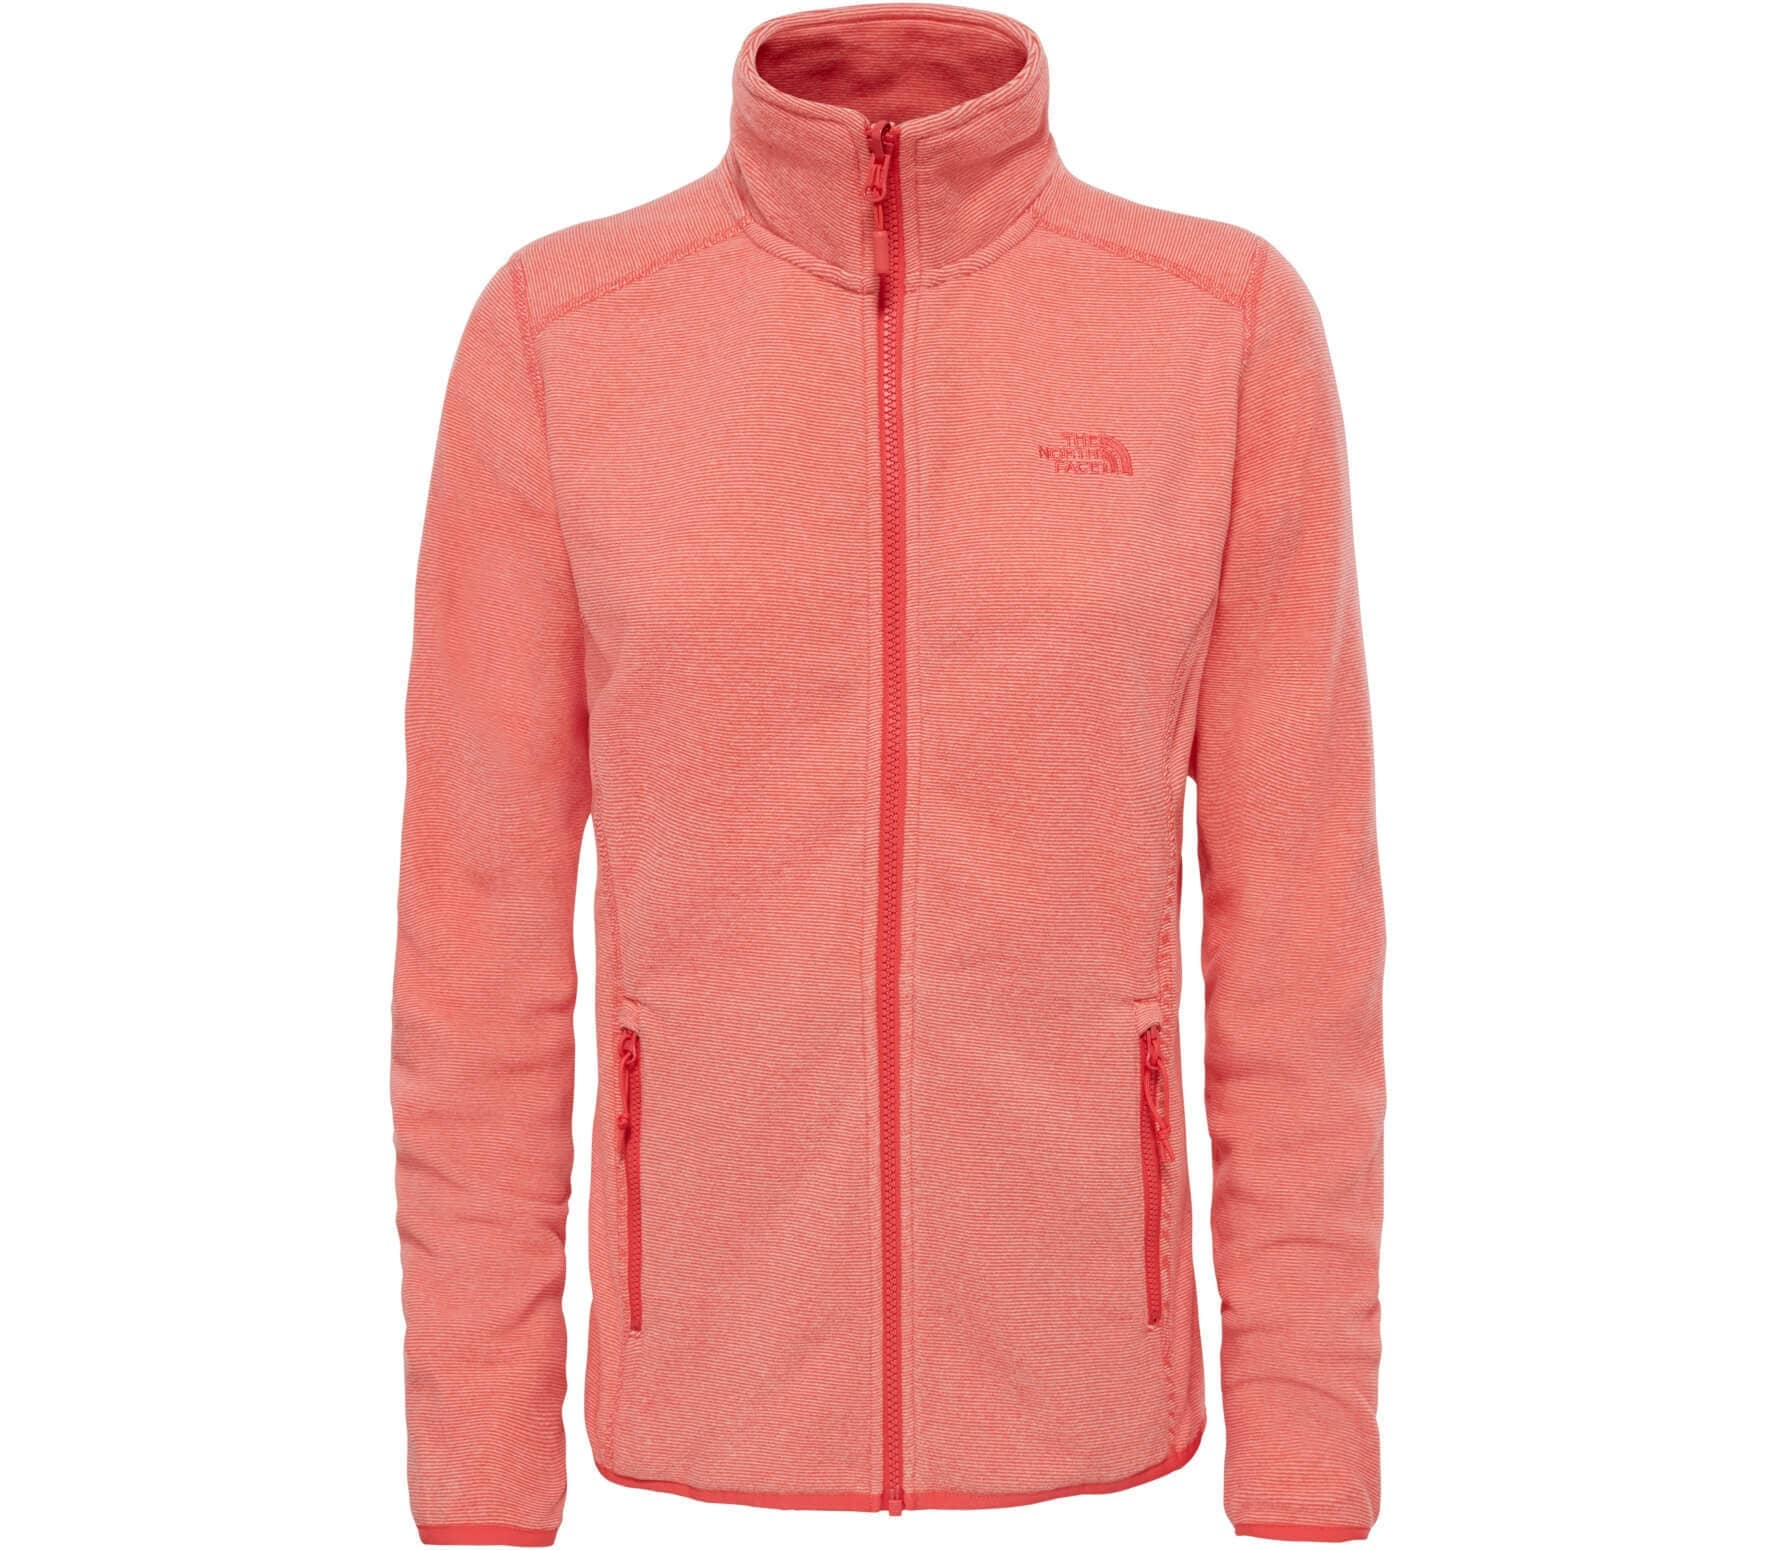 The North Face - 100 Glacier Full-Zip Donna giacca in pile (luce rossa)  compra online su Keller Sports fd0d94c37b25